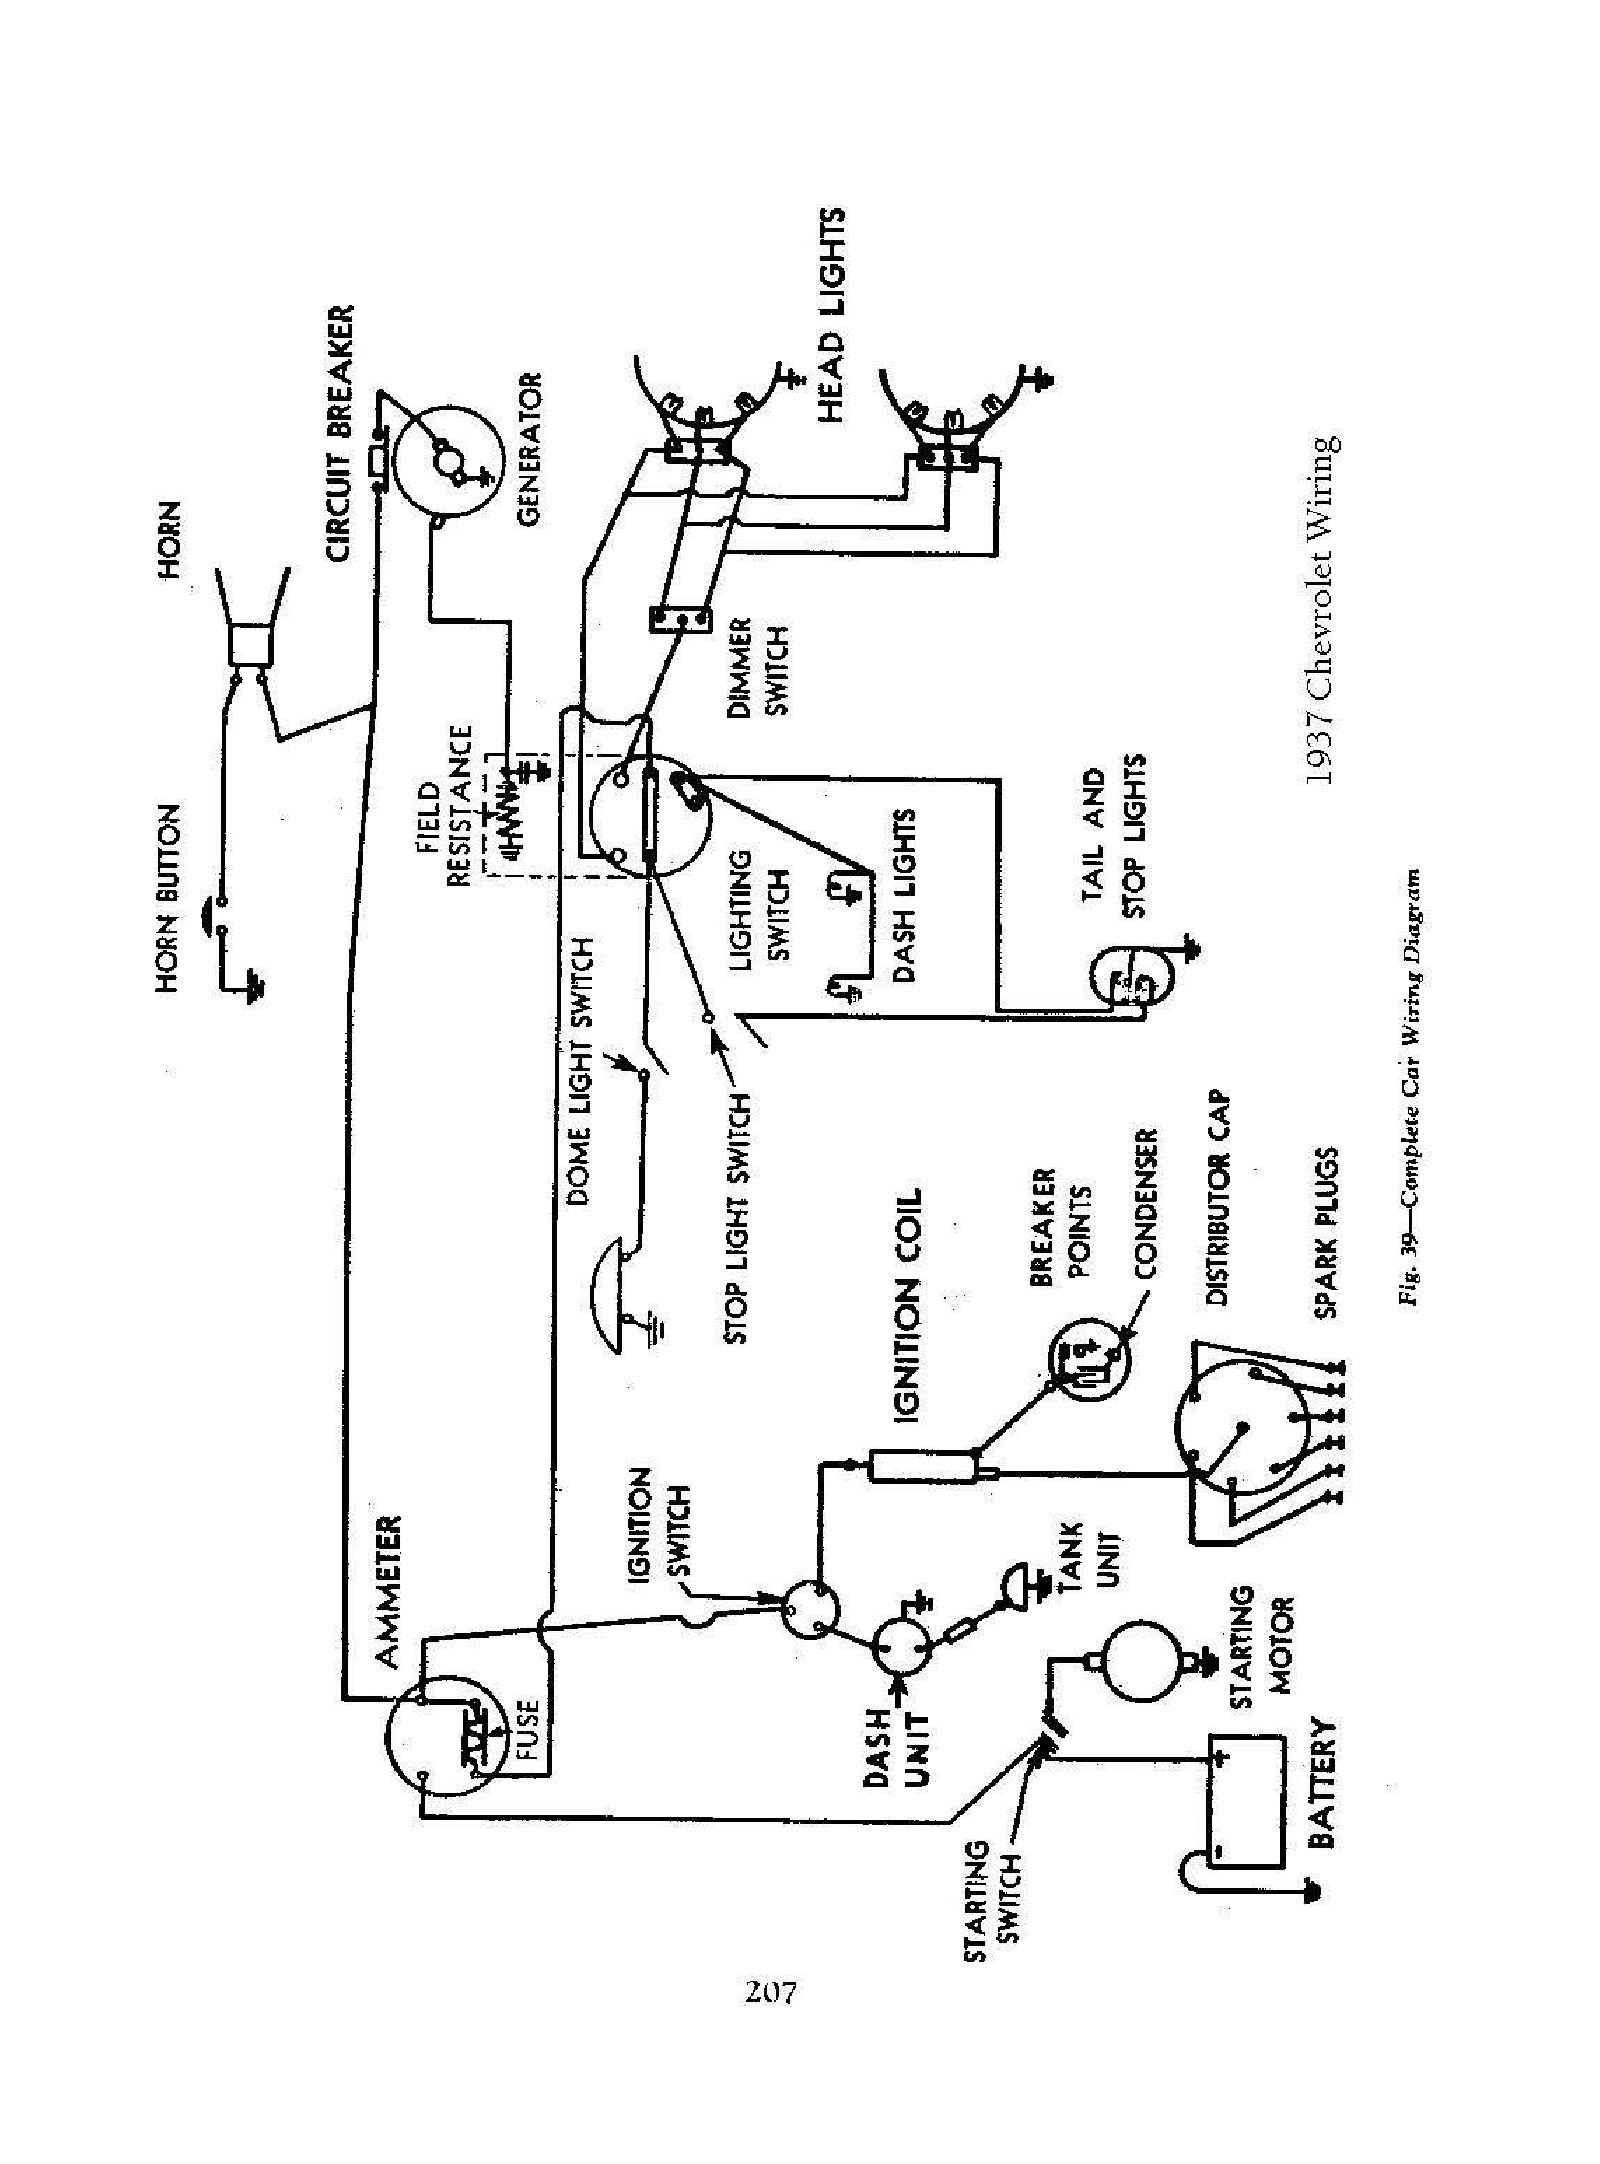 1950 Willys Jeepster Wiring Diagram, 1950, Free Engine